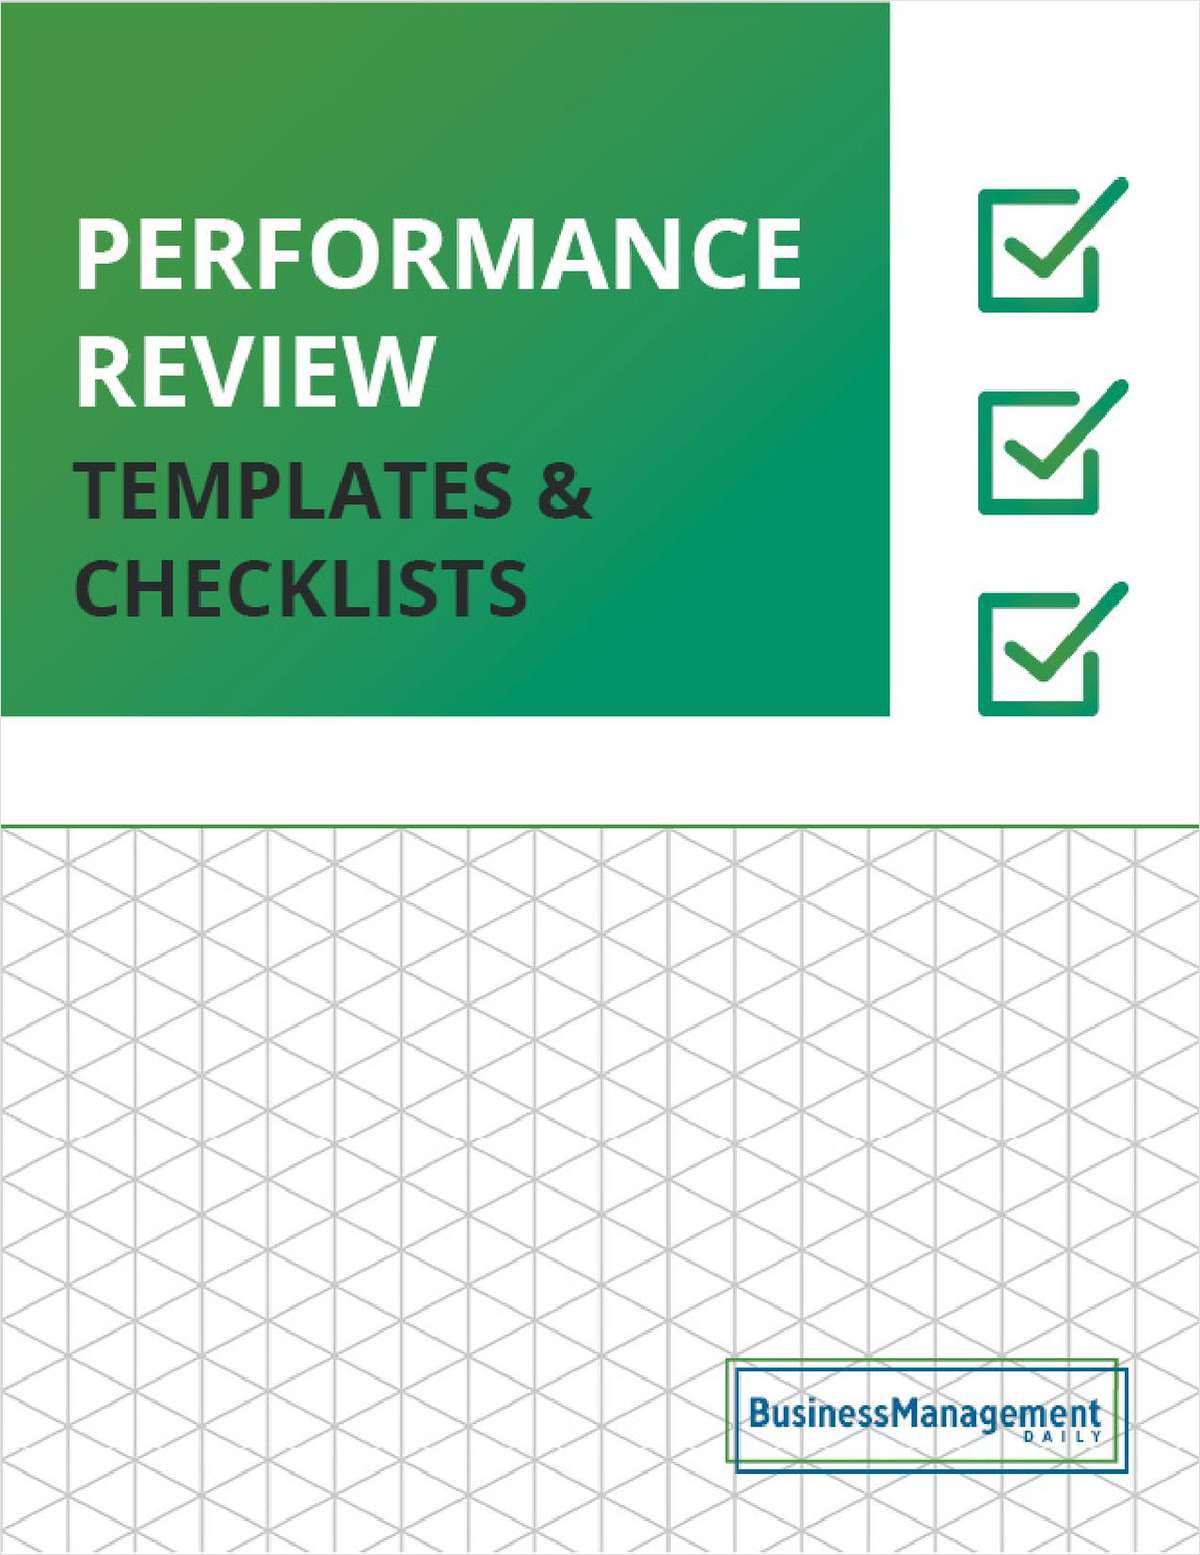 Performance Review Documents